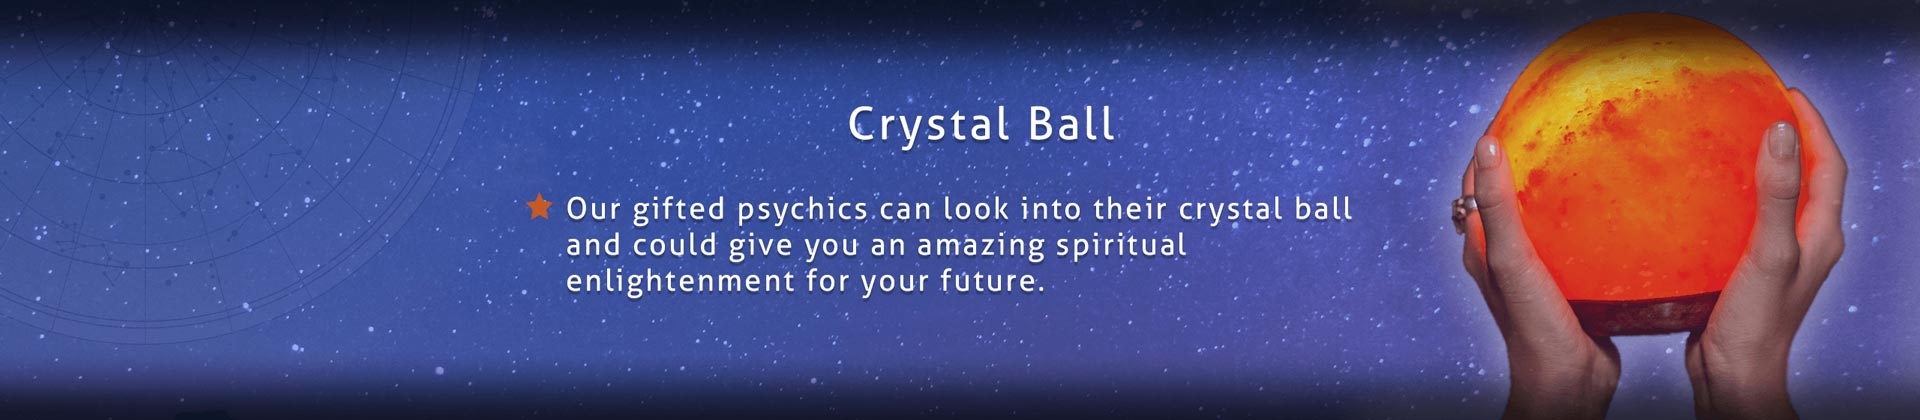 Crystal Ball Night Star